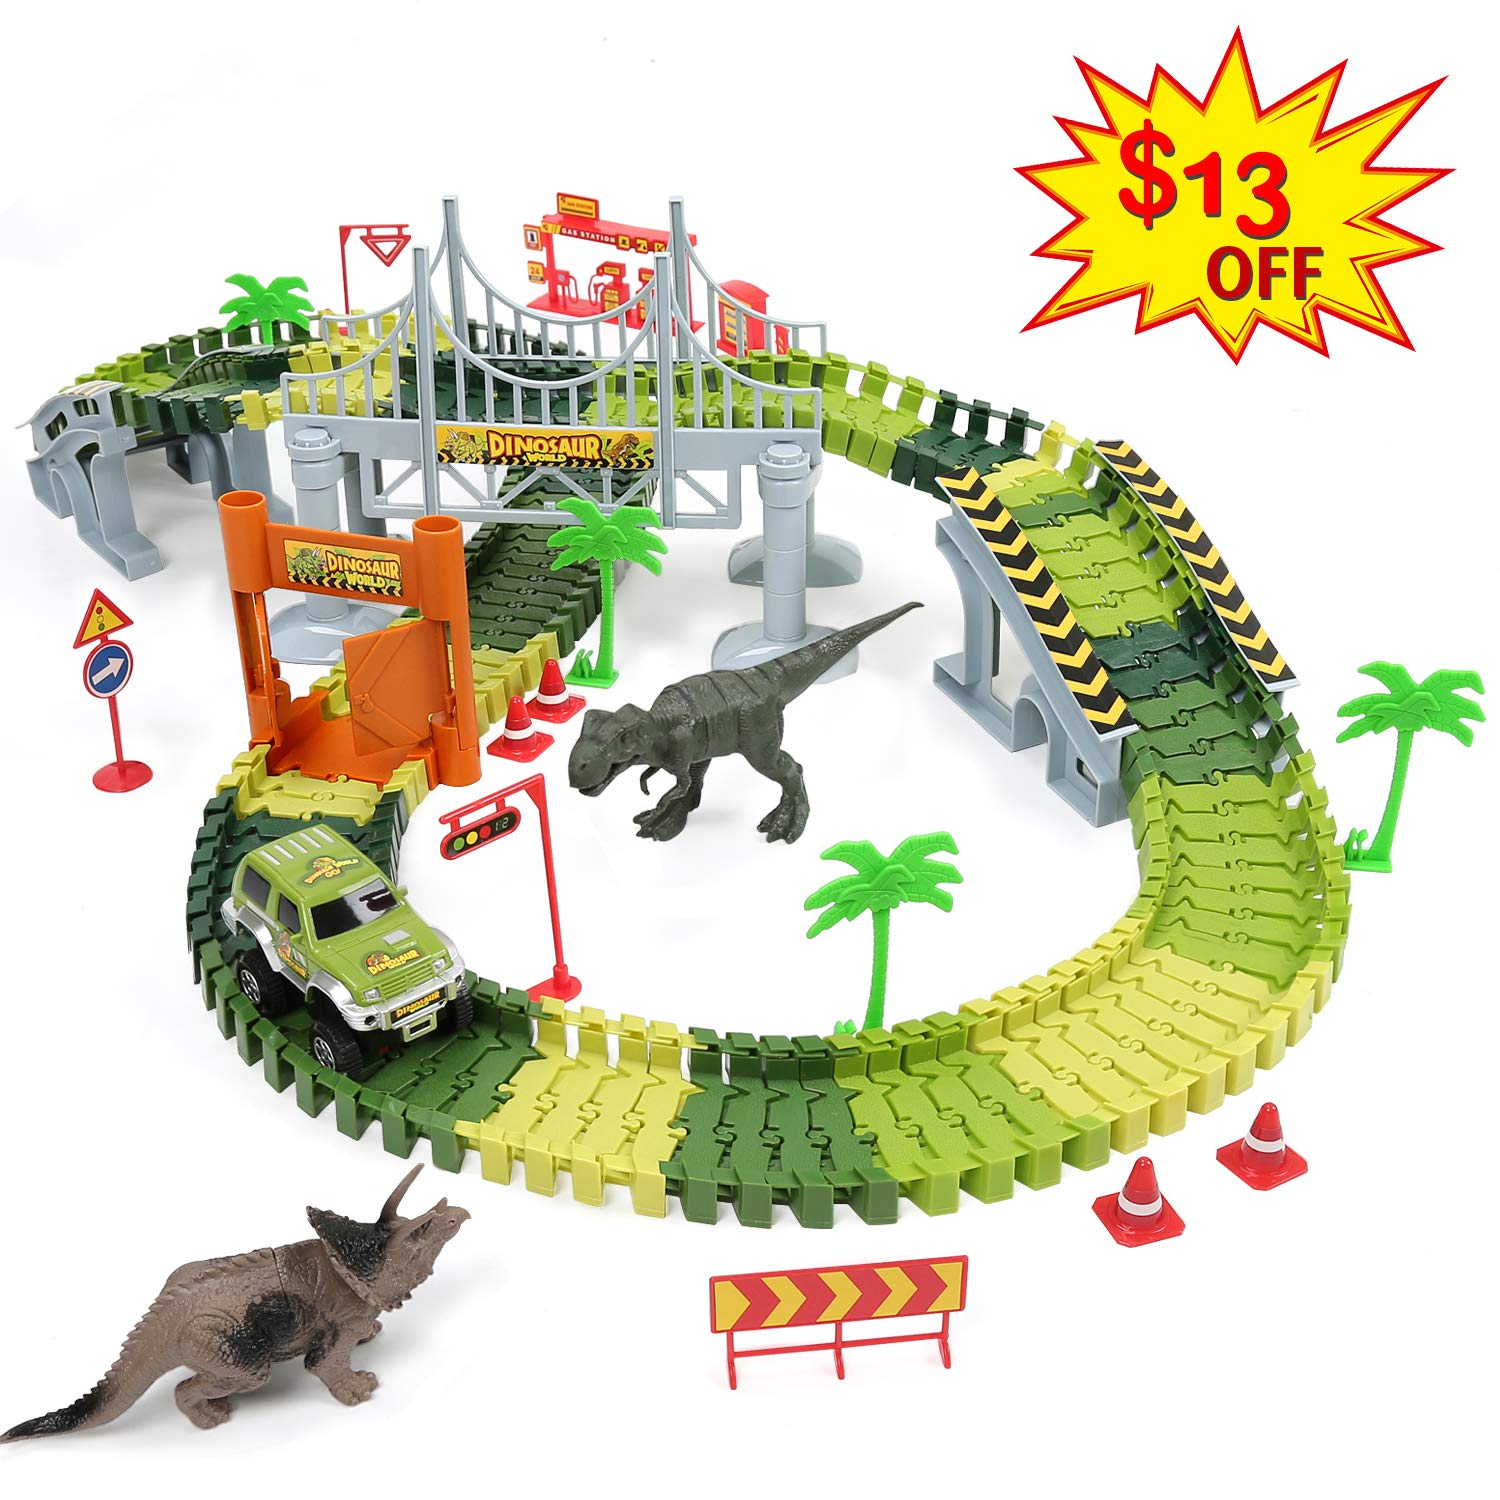 Dinosaur Toys Tracks Car Boy Gifts by Hugo's Ocean